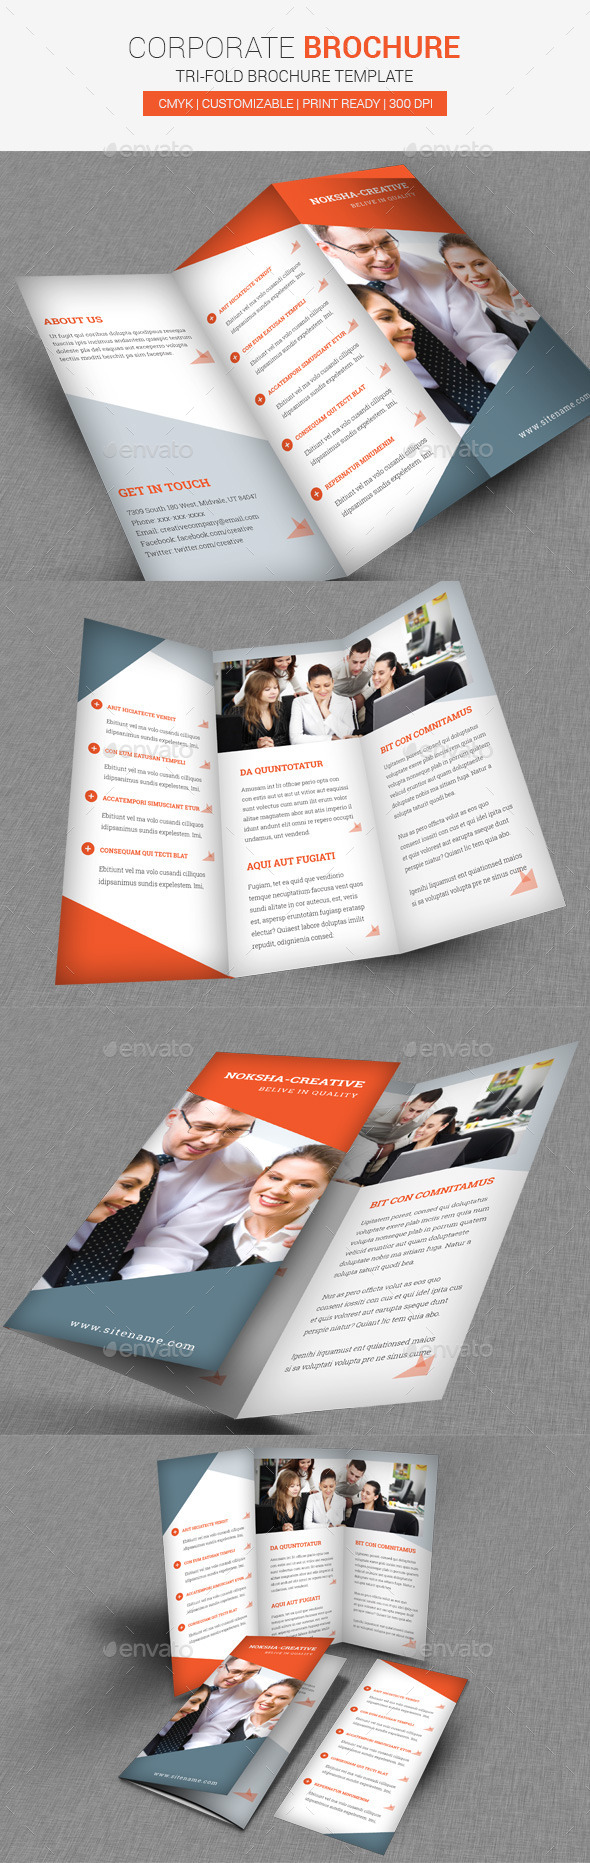 TriFold Brochure Corporate - Corporate Brochures